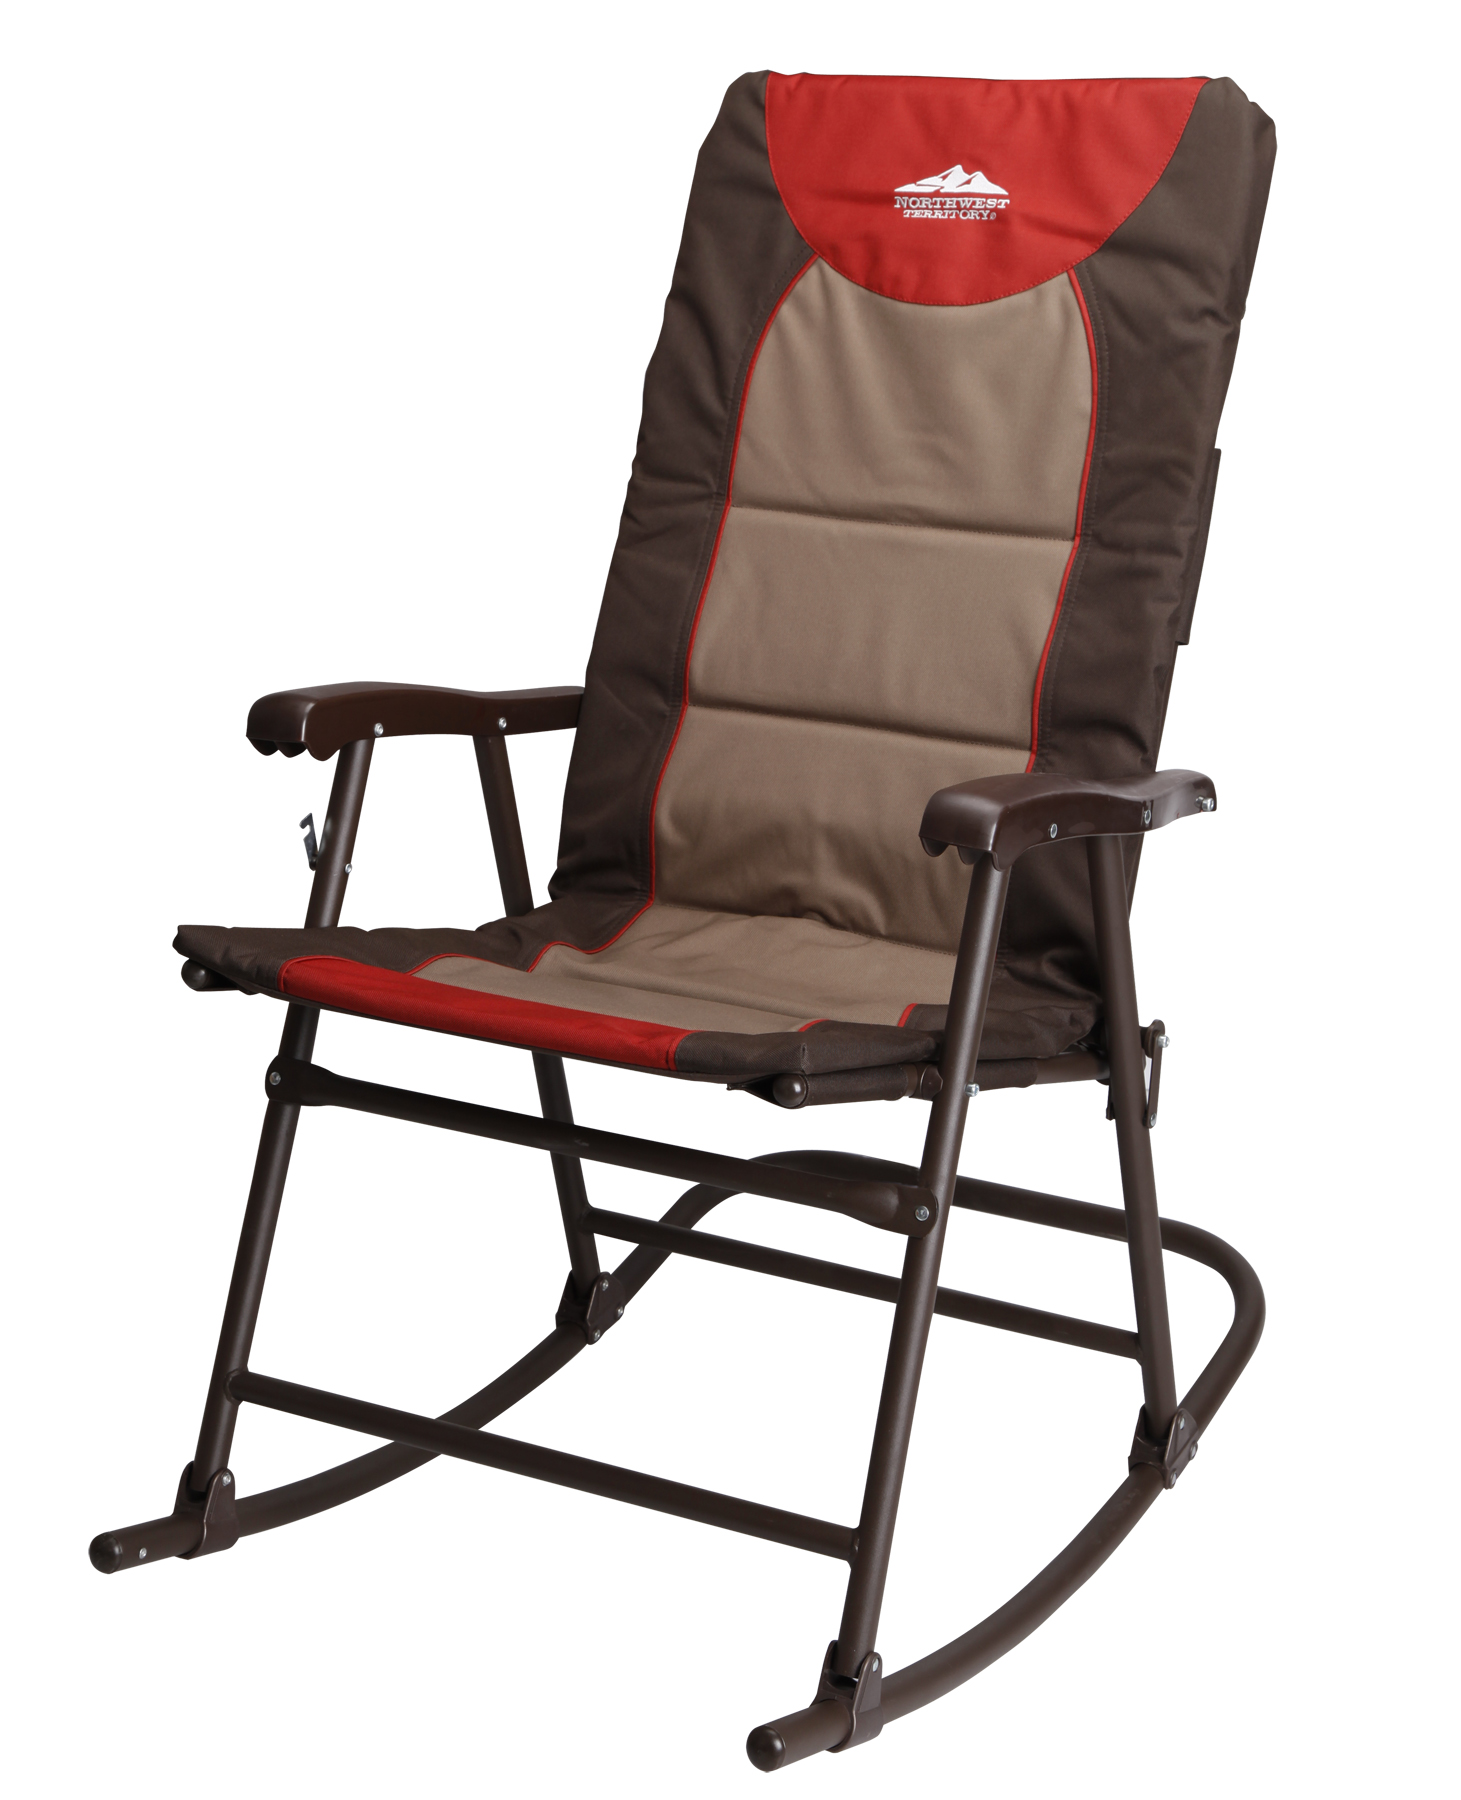 Rocky Chair Campsite Rocking Chair Portable Stylish Seating From Kmart